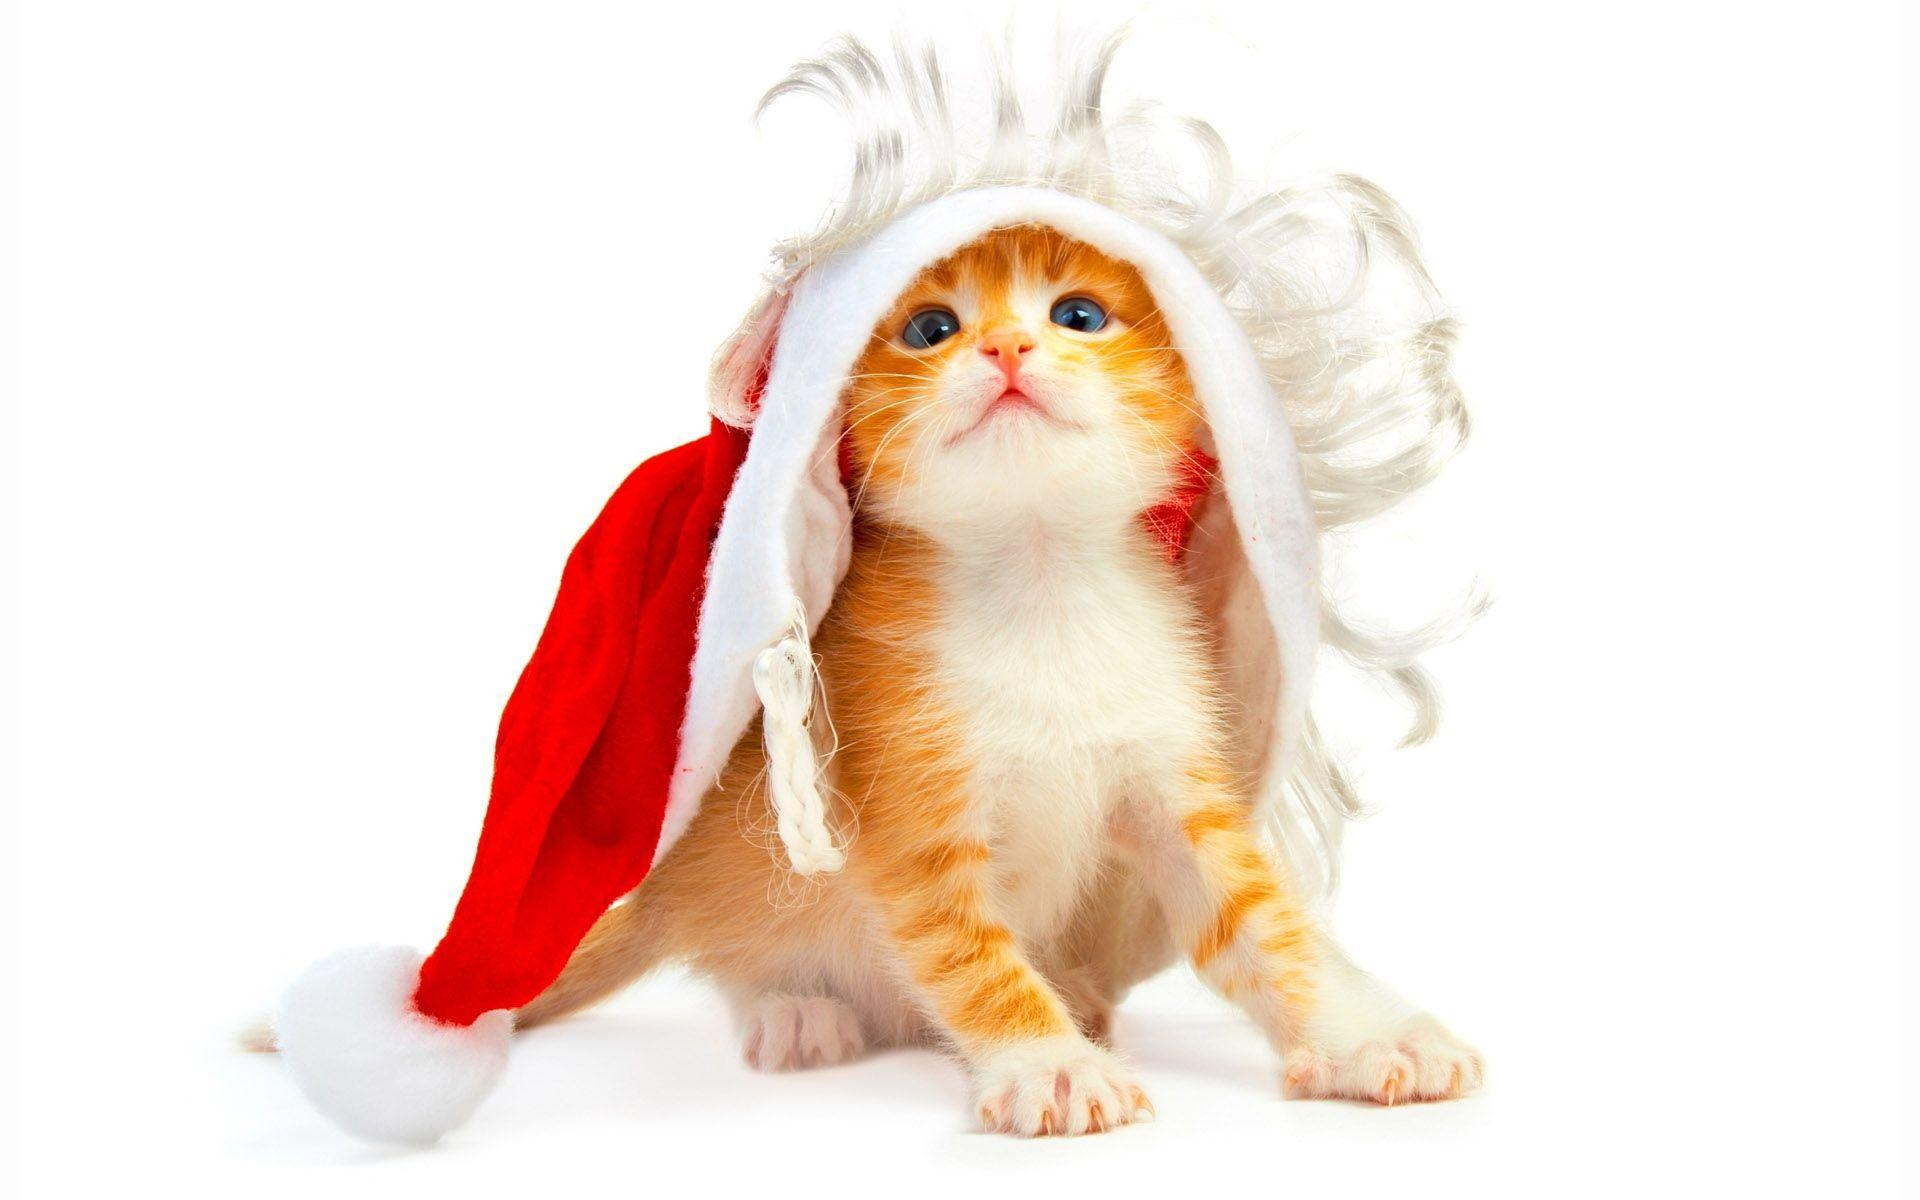 Christmas Kitten Wallpaper: Cute Christmas Kitten Wide Wallpaper ...